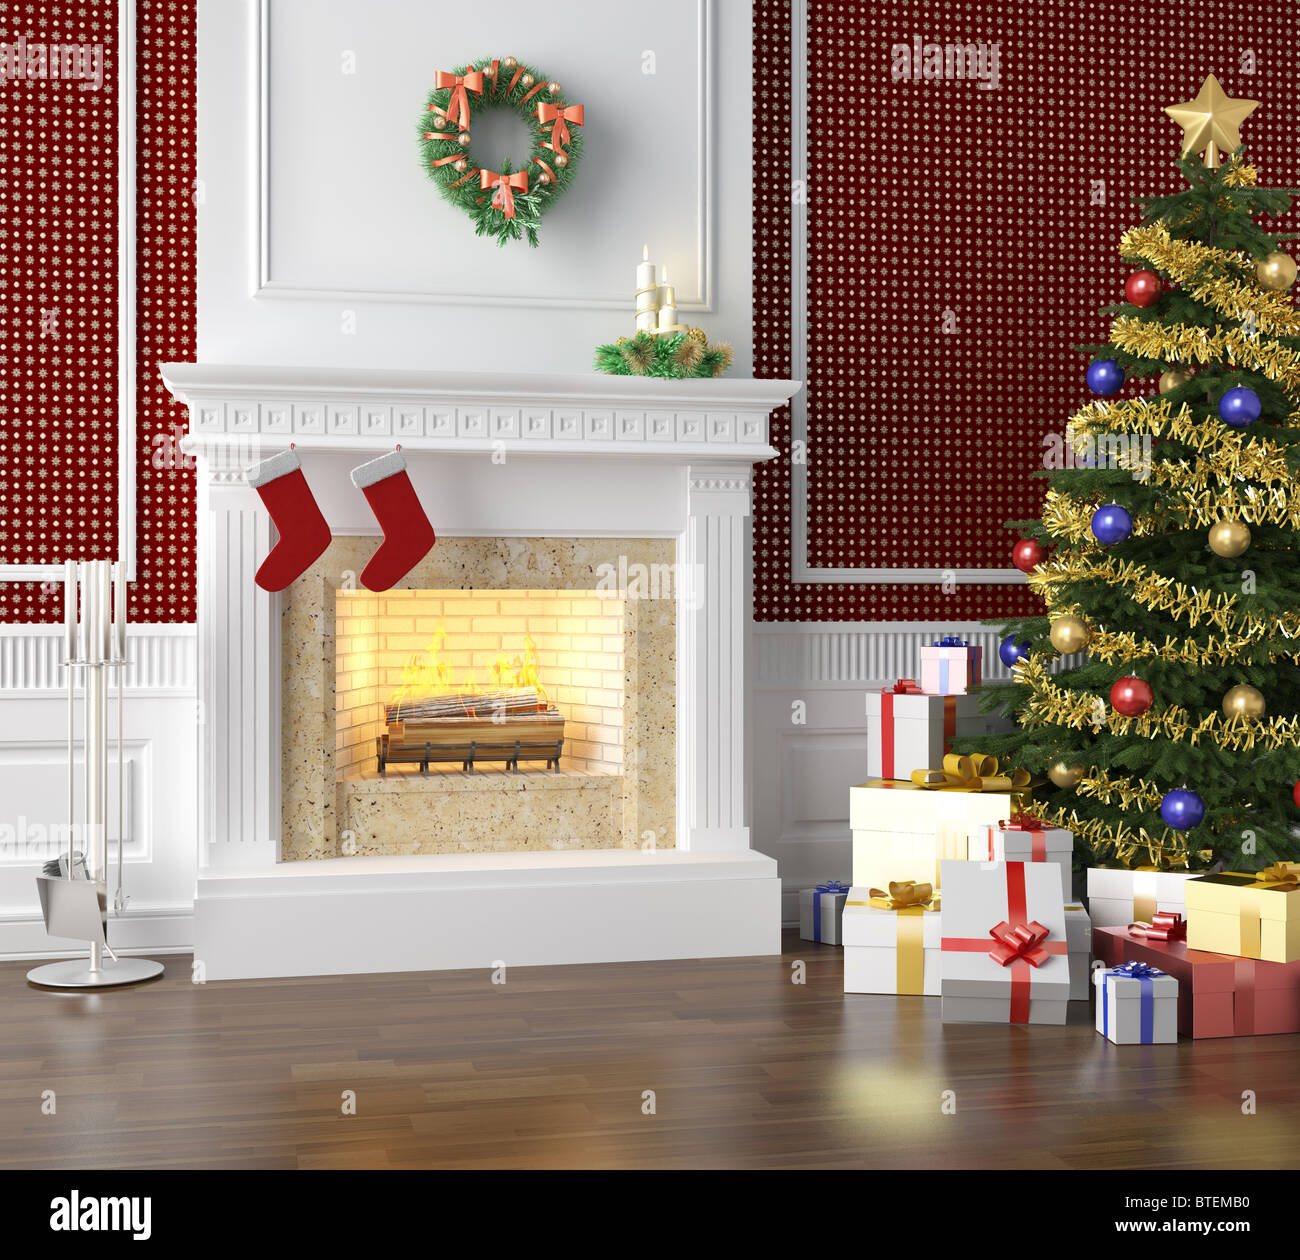 Fireplace In A Traditional Home Decorated For Christmas With Xmas